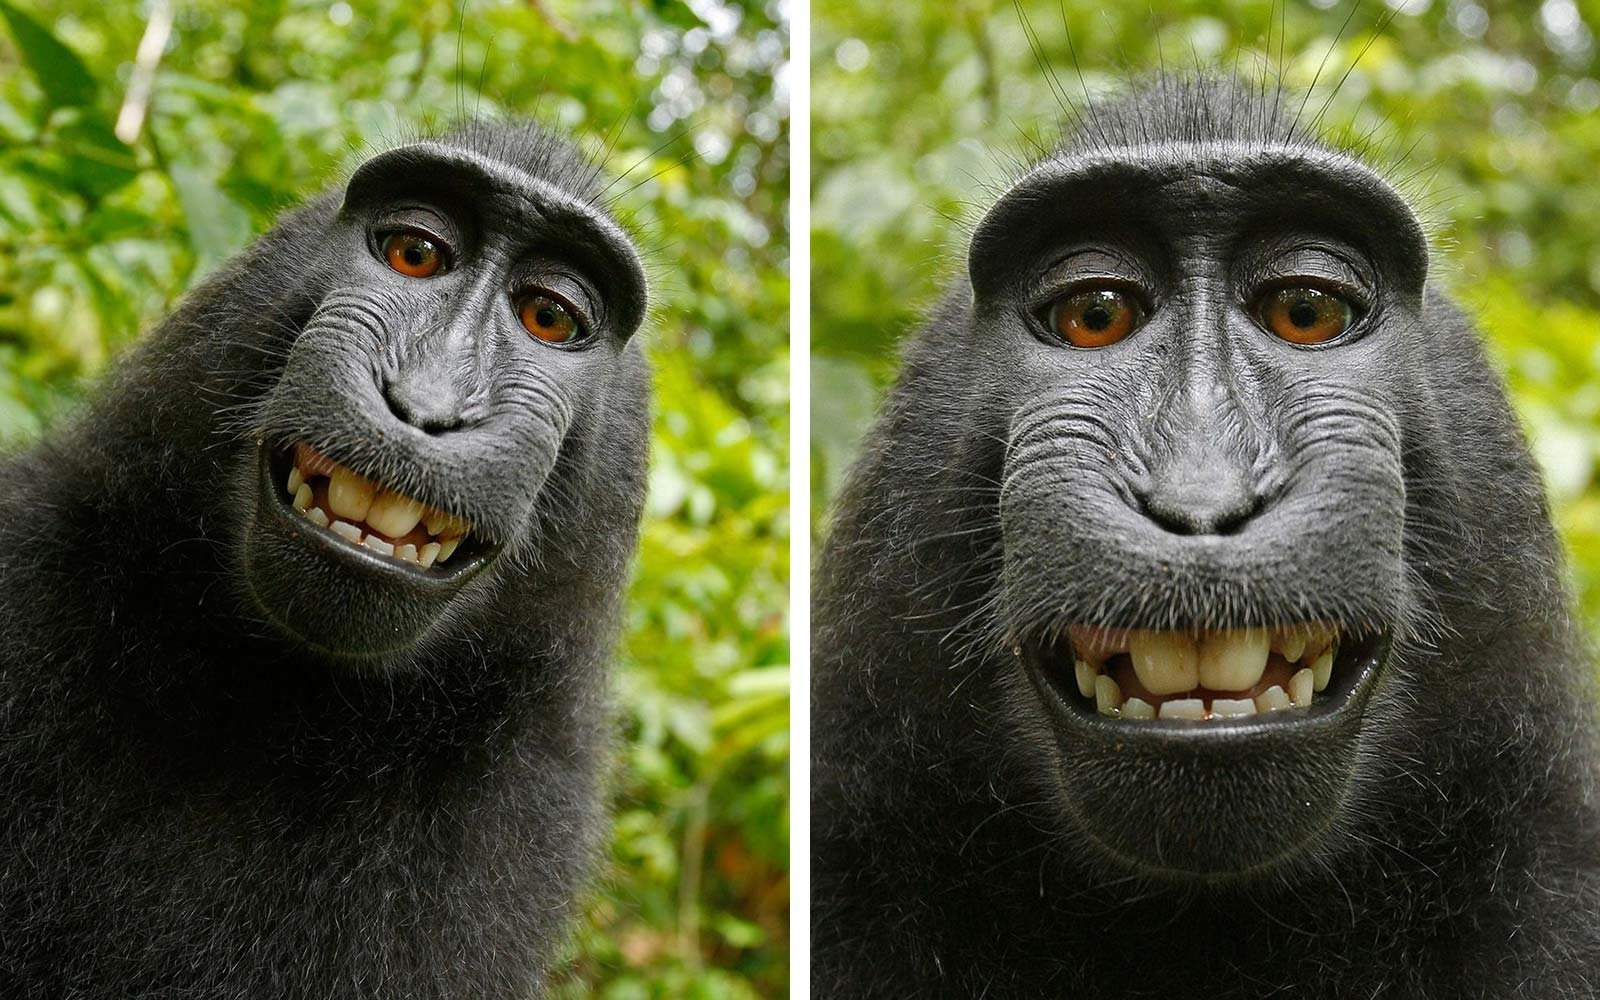 PETA David Slater photographer Naruta macau monkey photo selfie copyright